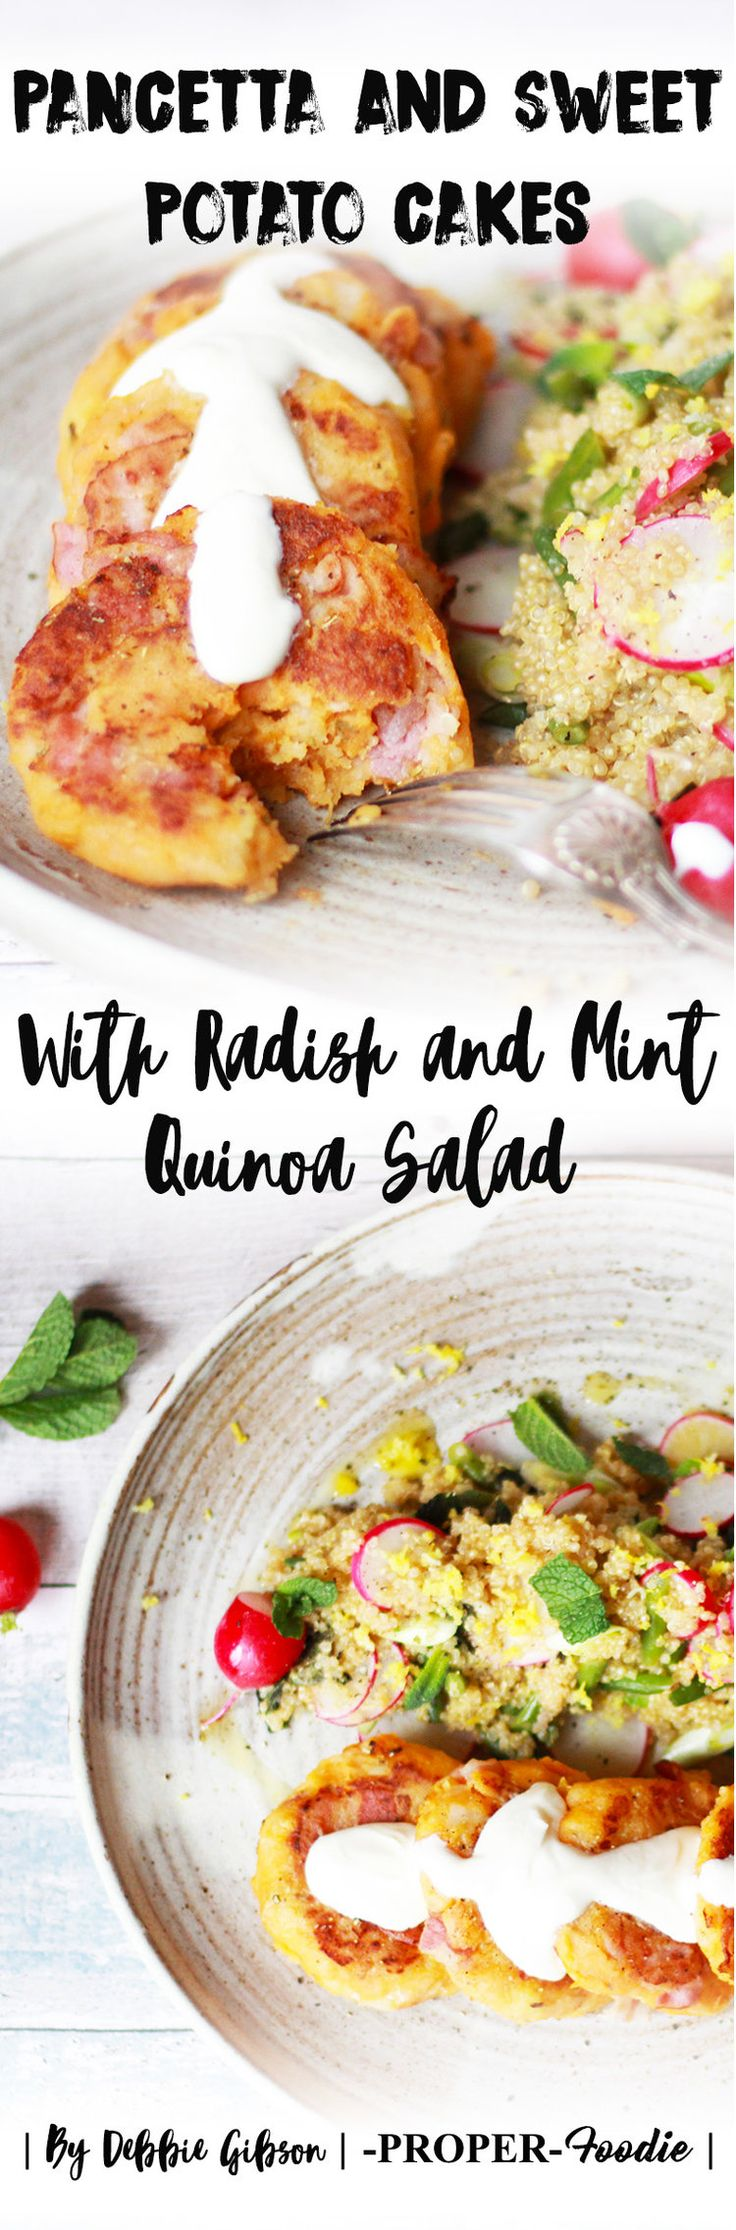 Rosemary, Pancetta and Sweet Potato Cakes with Radish and Mint Quinoa Salad — Kat Horrocks